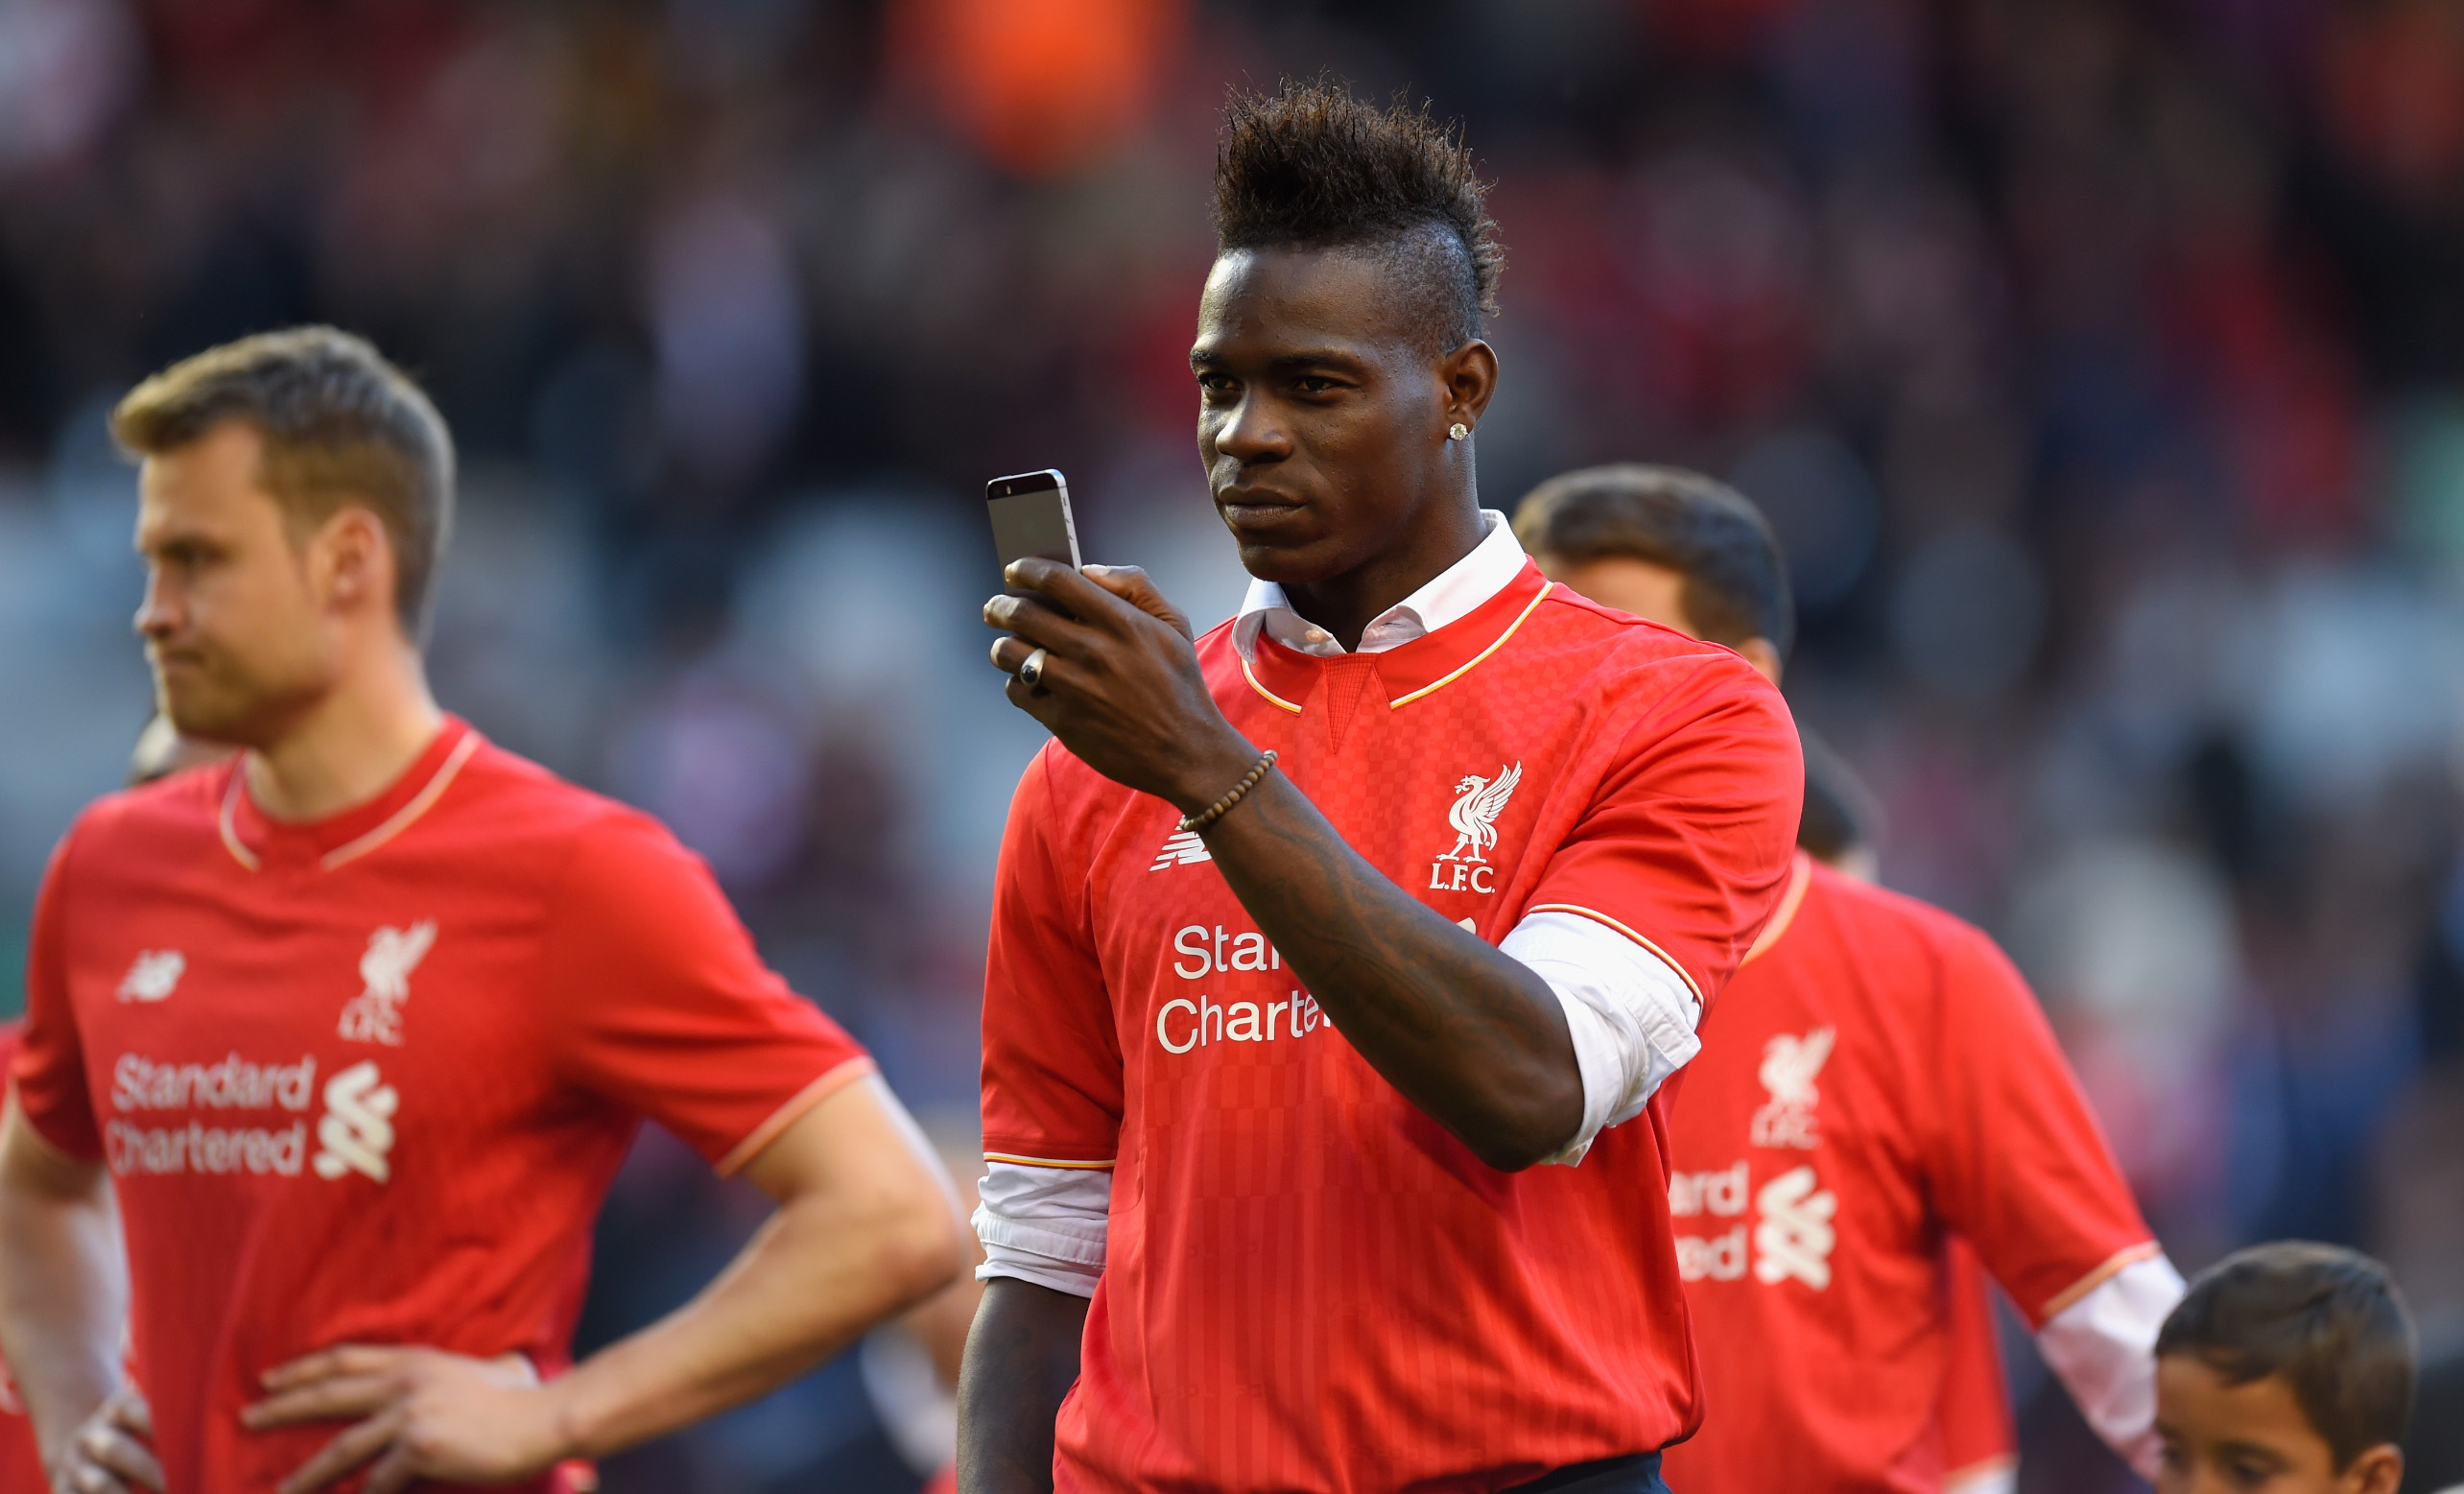 LIVERPOOL, ENGLAND - MAY 16:  Mario Balotelli of Liverpool takes pictures of the fans on his phone after the Barclays Premier League match betrween Liverpool and Crystal Palace at Anfield on May 16, 2015 in Liverpool, England.  (Photo by Stu Forster/Getty Images)